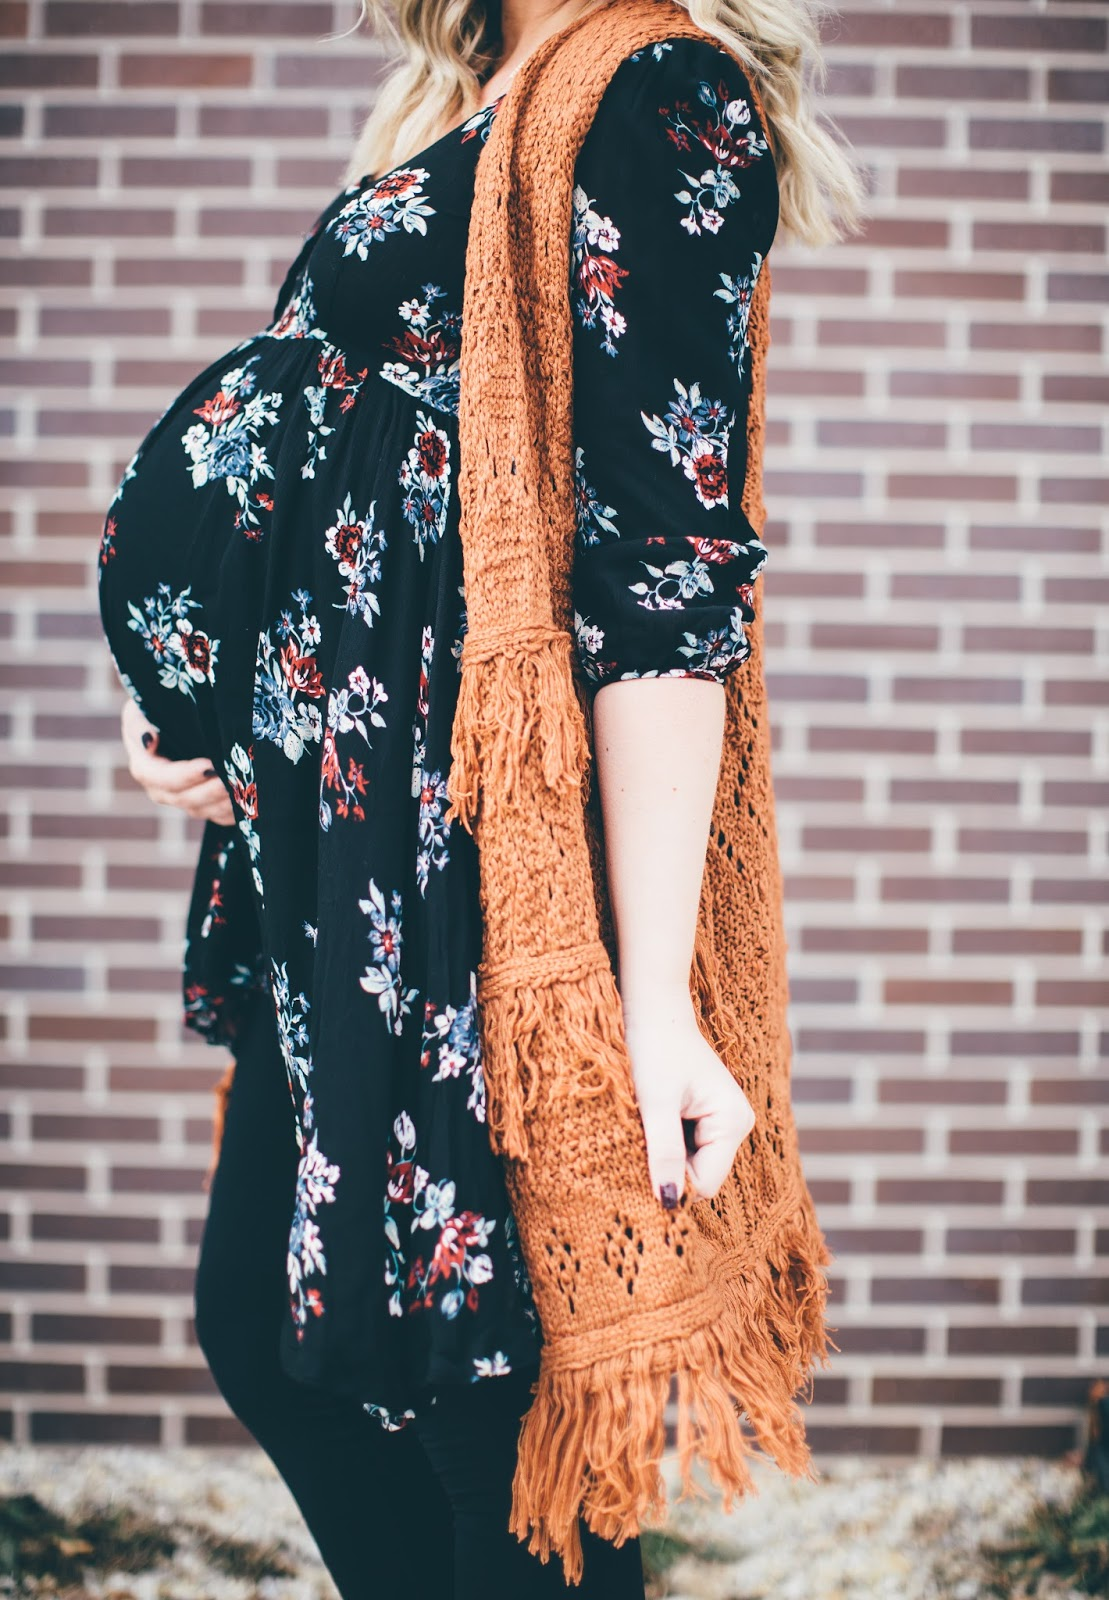 Floral Tunic, Fringe Cardigan, Paige Avenue, Utah Fashion Blogger